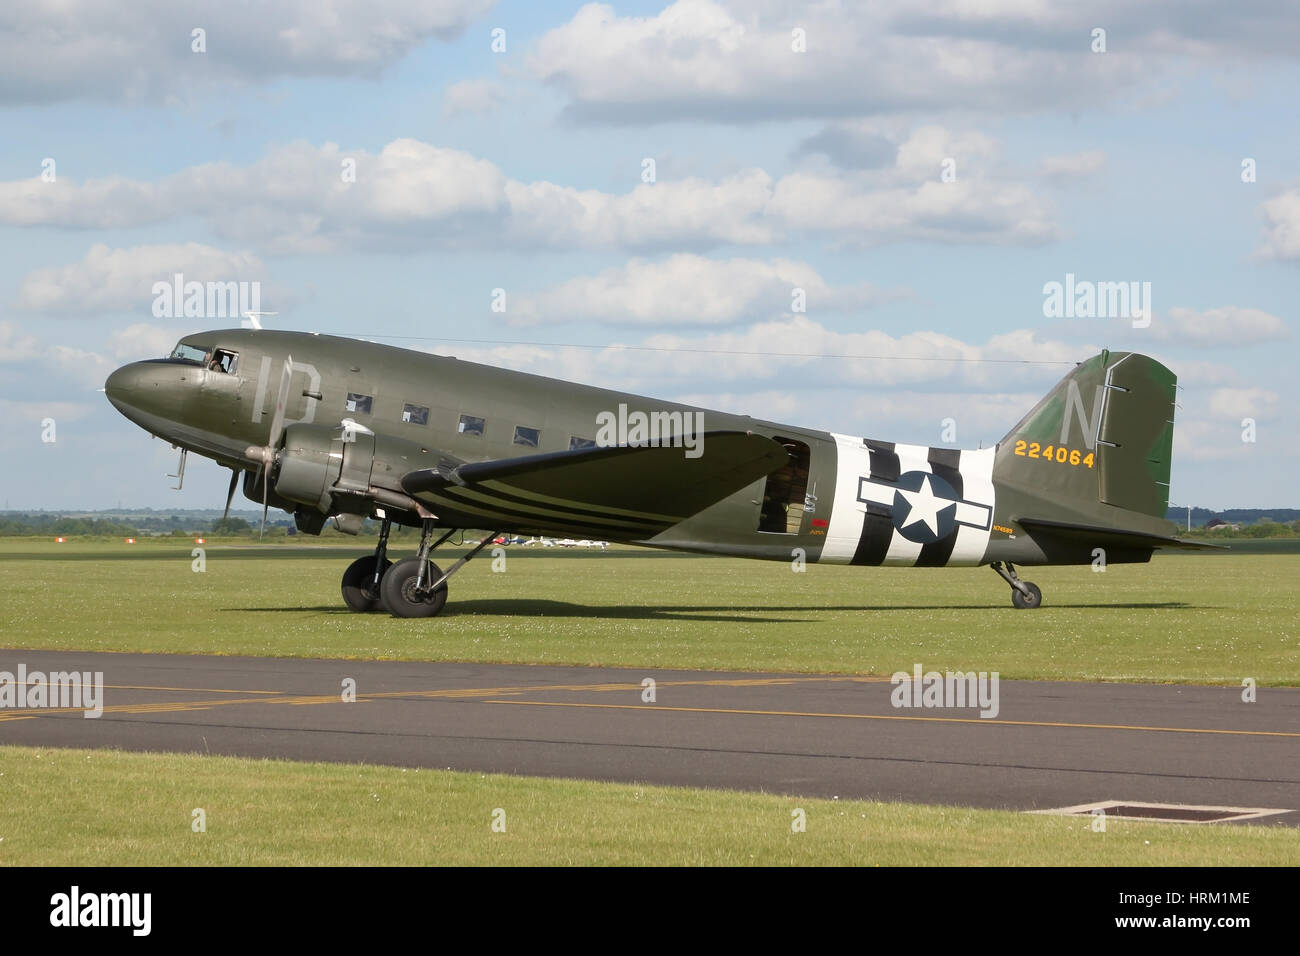 One of two US based DC-3/C-47s too have made the trip to Europe in 2014 for the 70th anniversary of the D-Day landings. - Stock Image